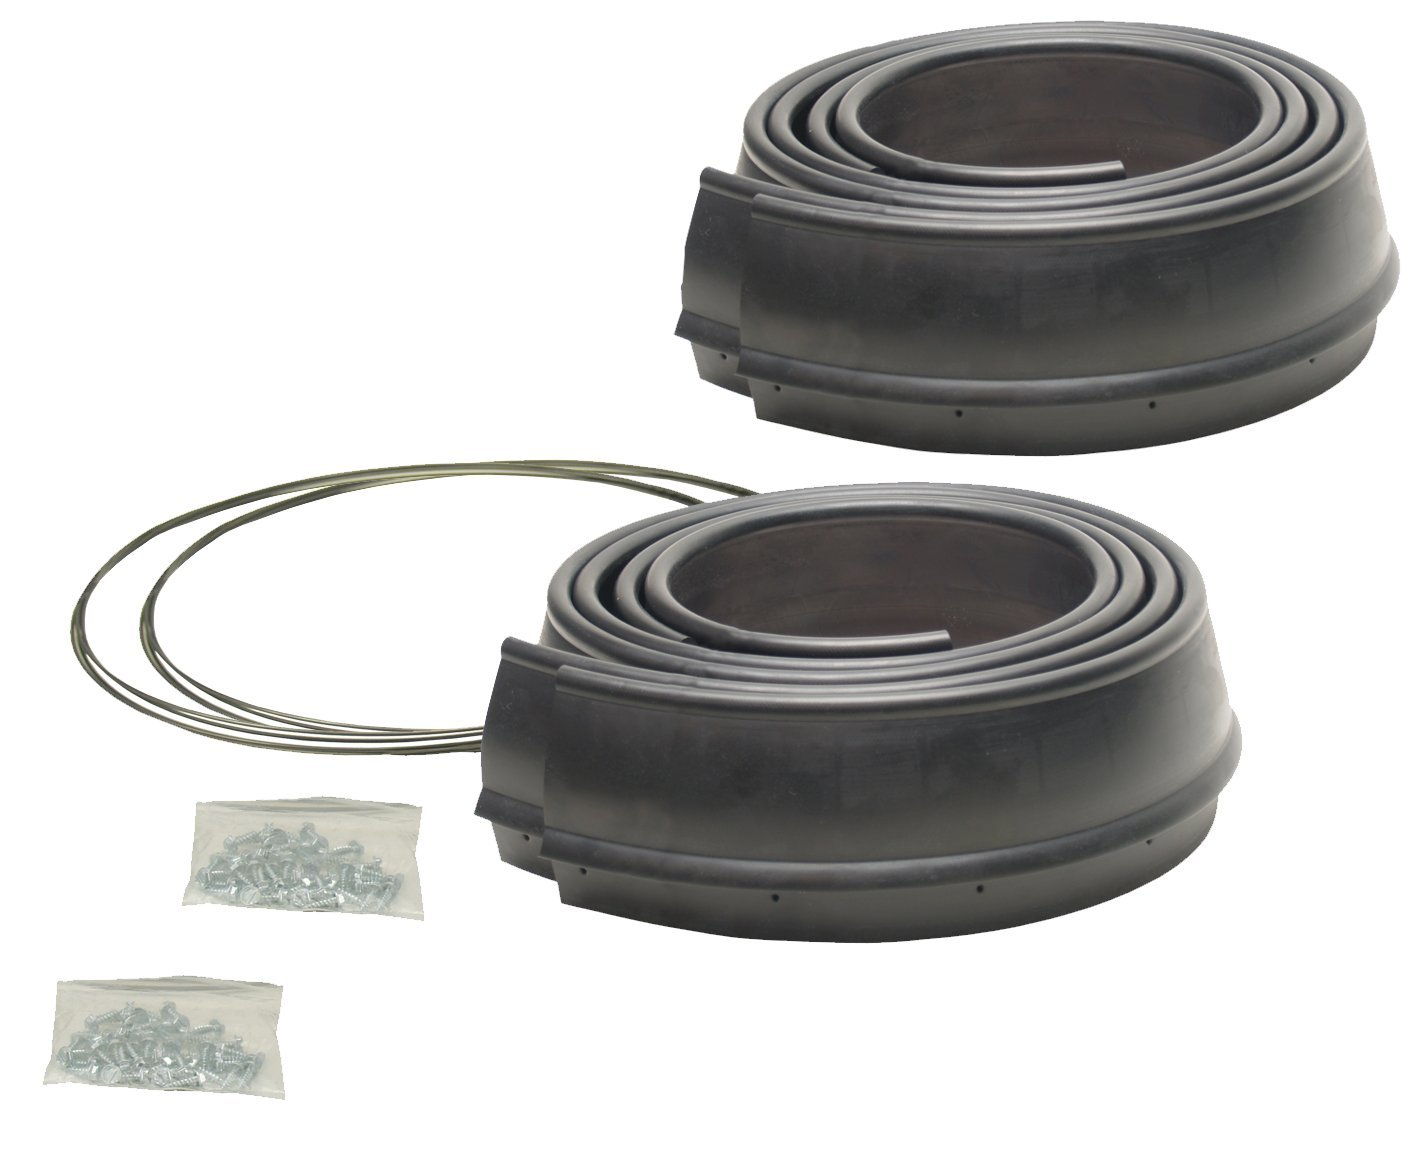 4 Piece Pacer Performance 52-189 Flexy Flares Black 2-1//2 x 58 Heavy Duty Reinforced Rubber Fender Extension Kit